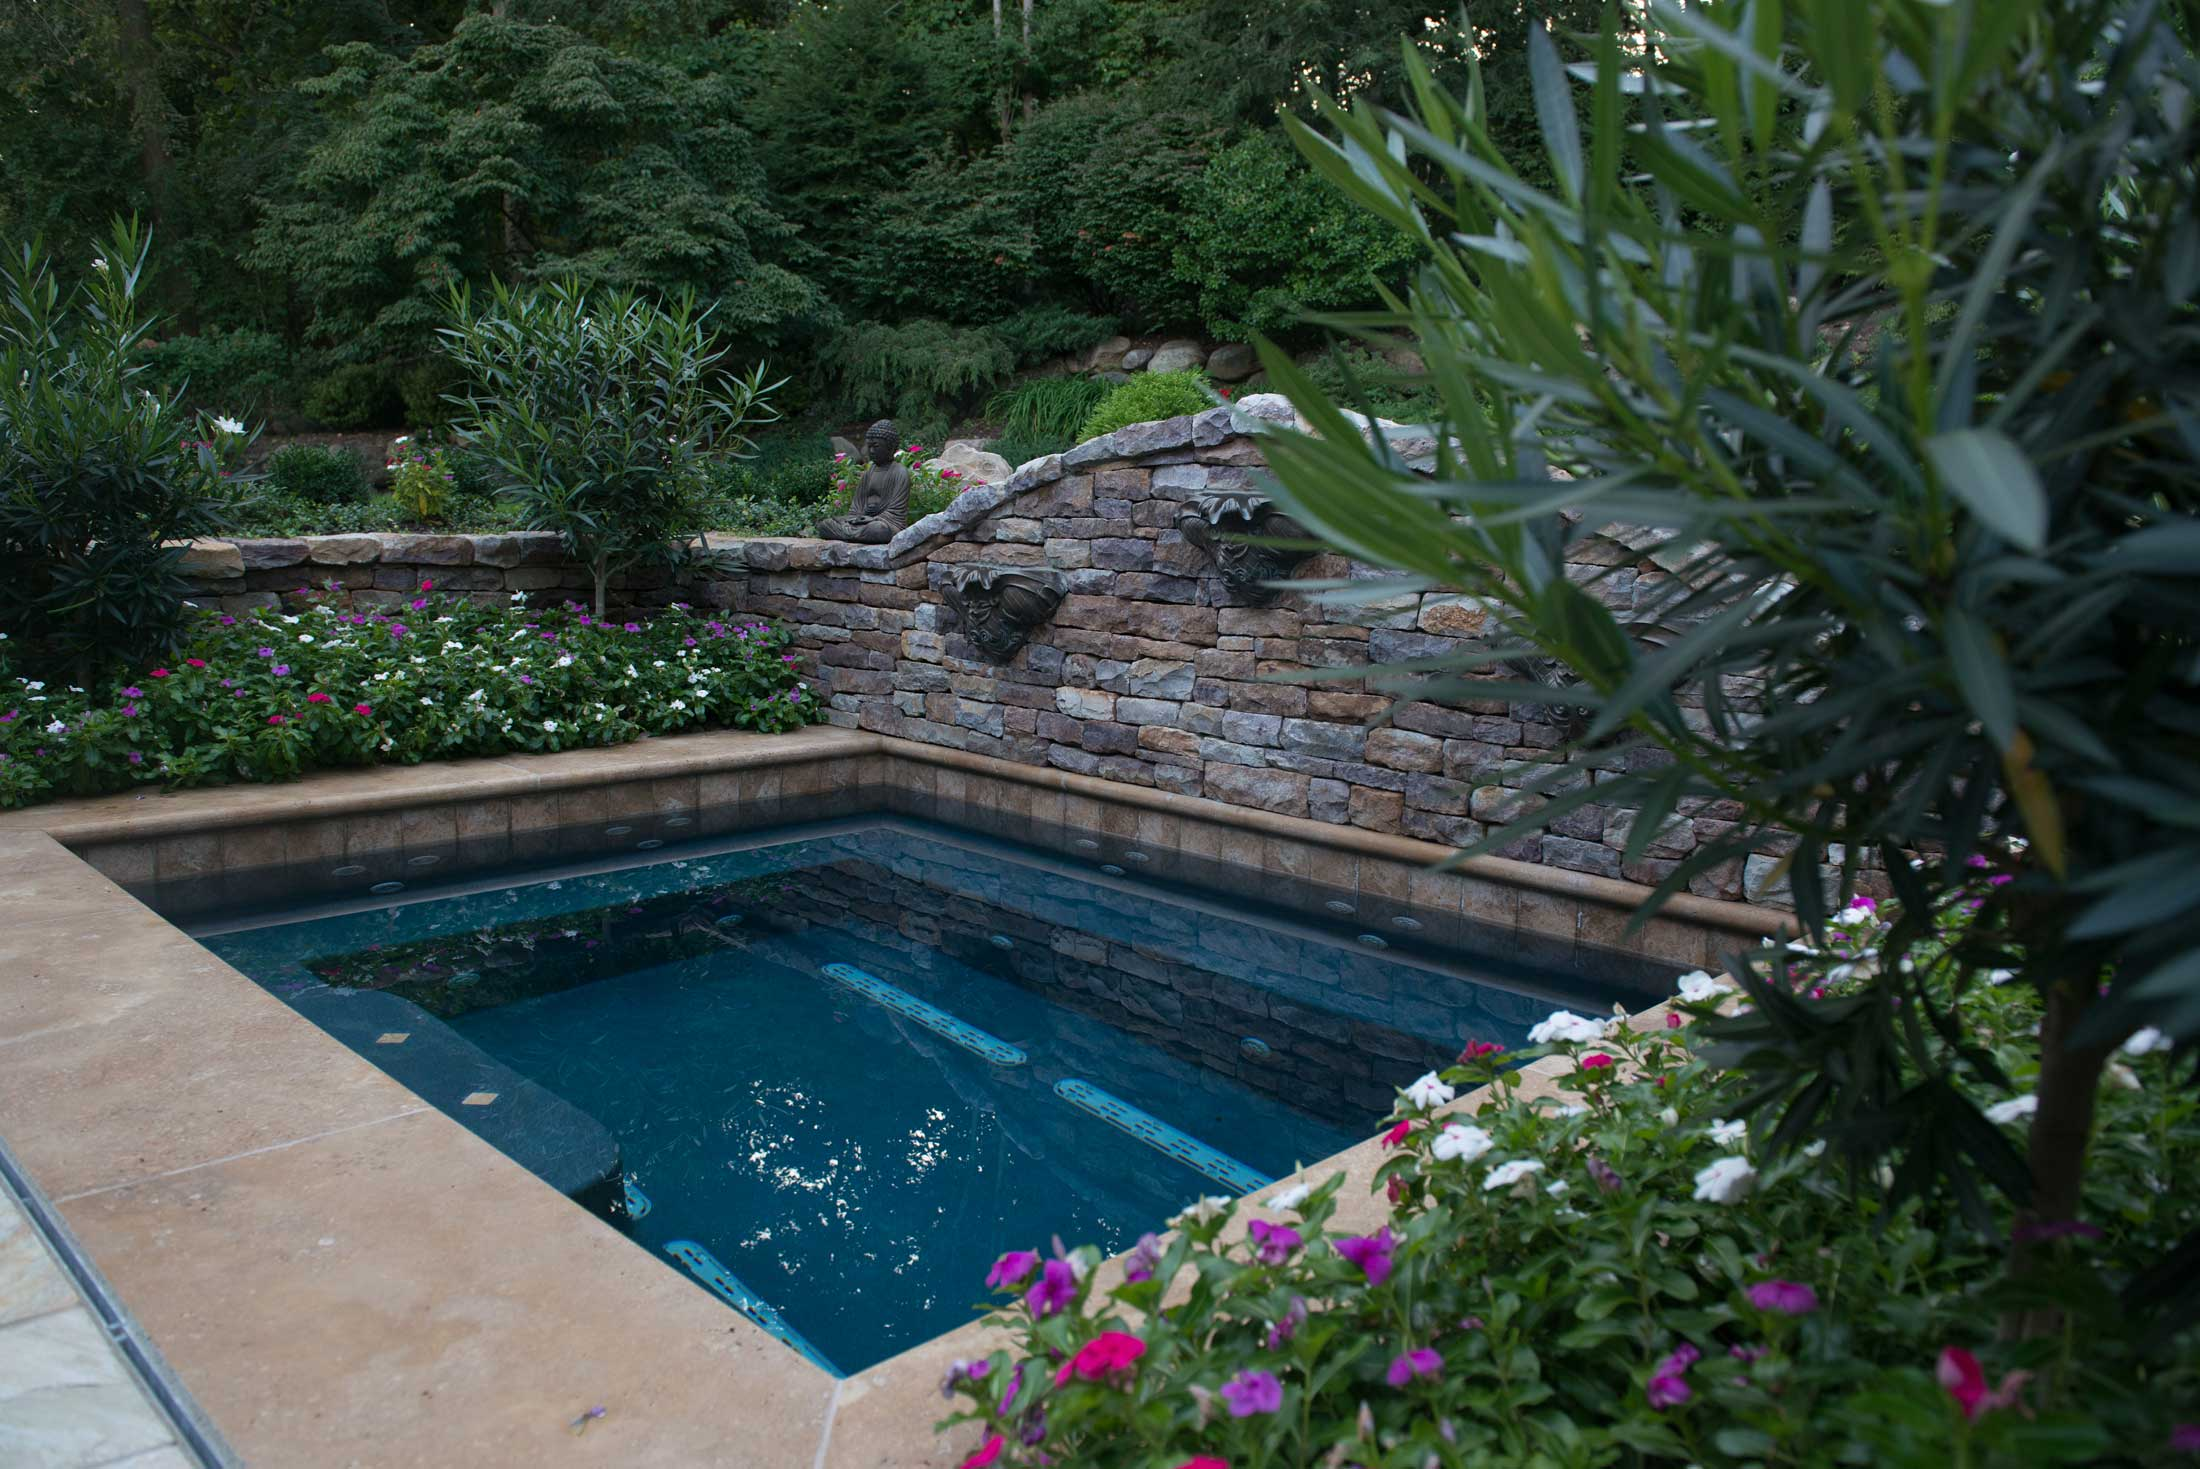 Custom Spa Design & Construction with flower beds and water features